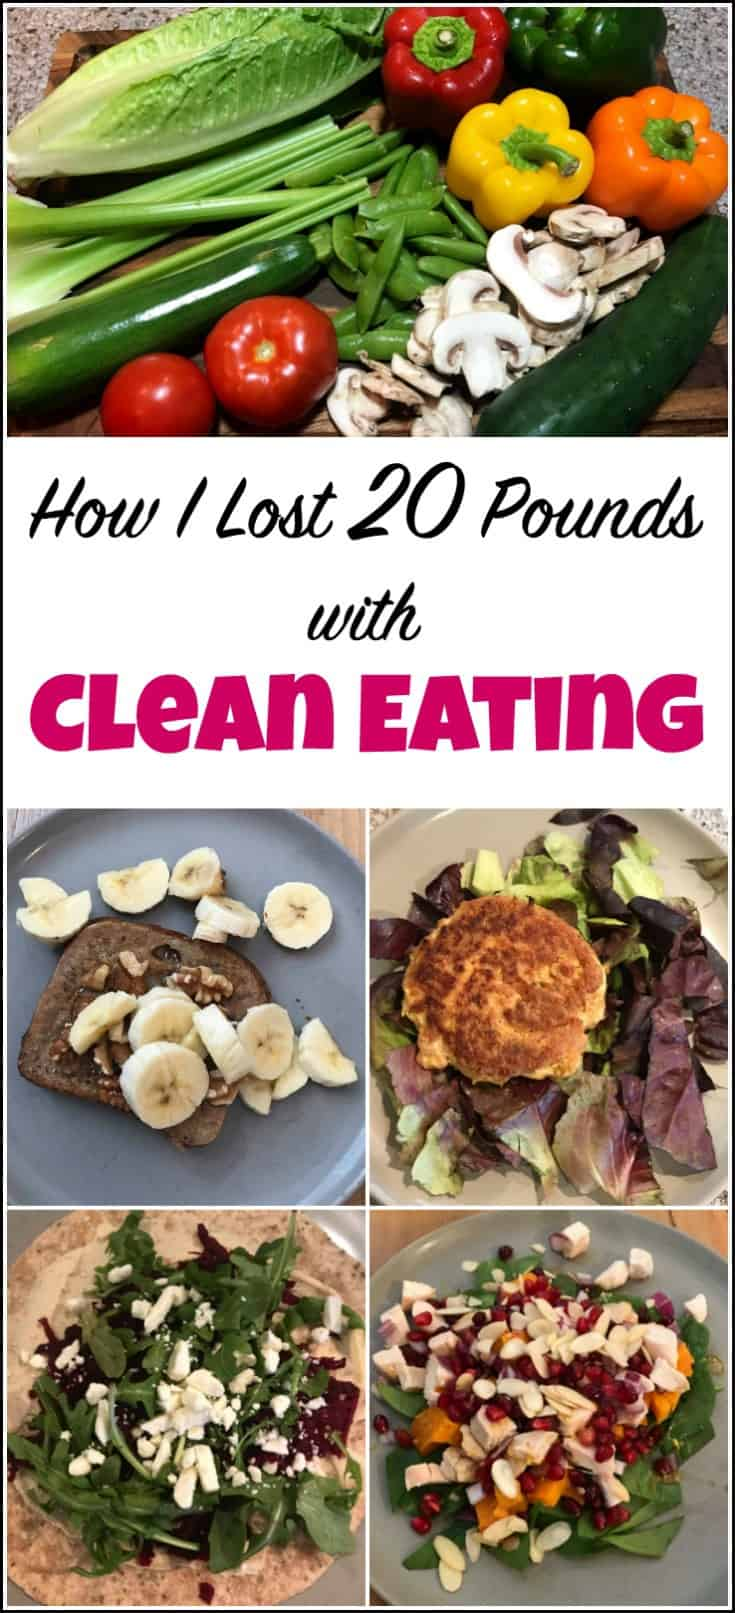 If you are trying to lose weight or struggling with weight loss. This is how I have lost 20 pounds with a clean eating lifestyle. Eating clean has me lighter, fitter and feeling better. Clean eating, eat clean, eating clean, clean eating lifestyle, 30 day challenge, lose weight, #cleaneating #wholefoods #realfood